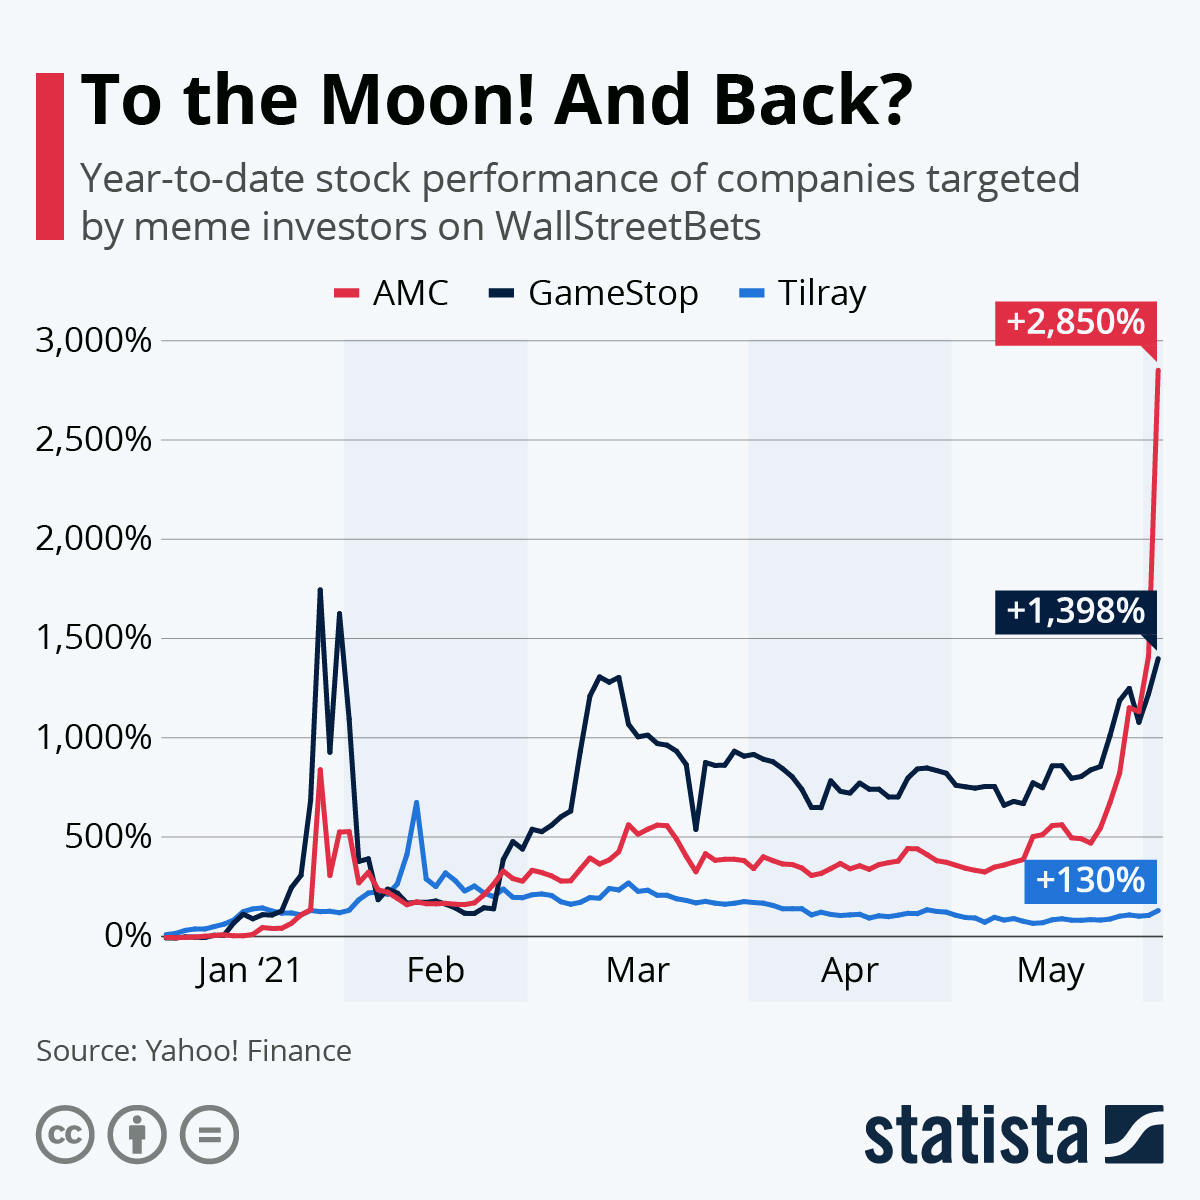 To The Moon! And Back?